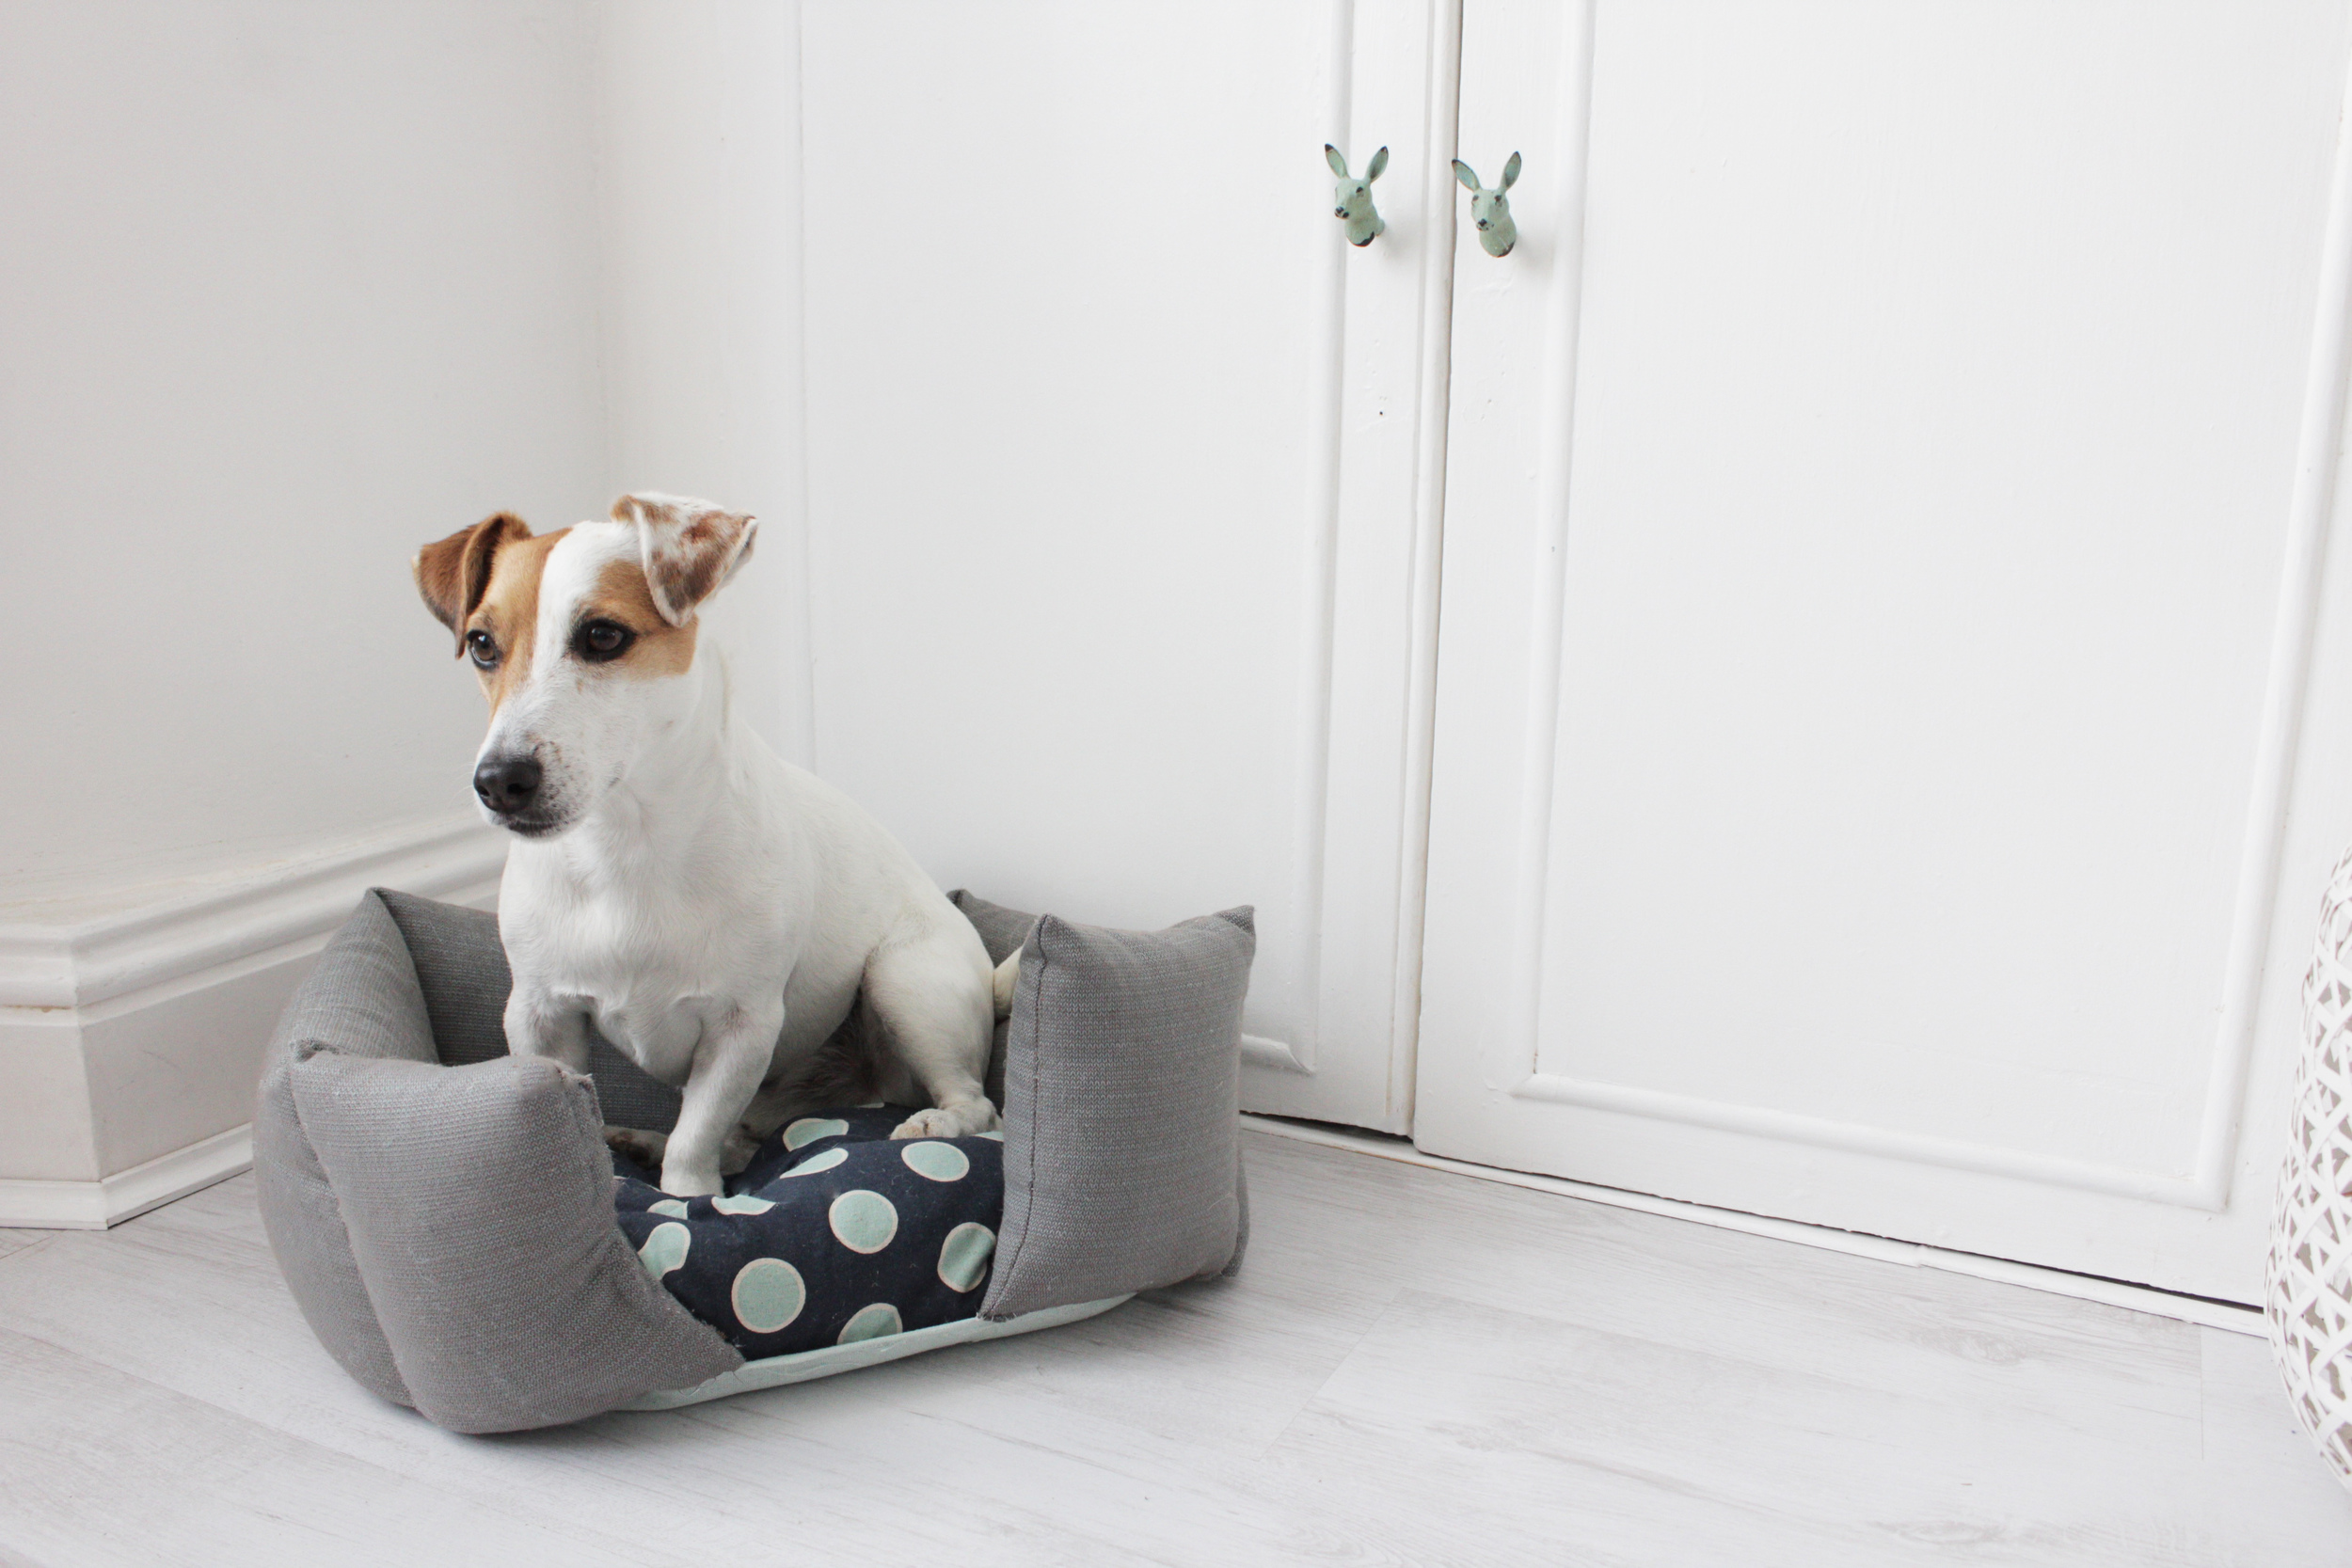 Upcycle a duvet into a dog bed, tutorial by Hester's Handmade Home